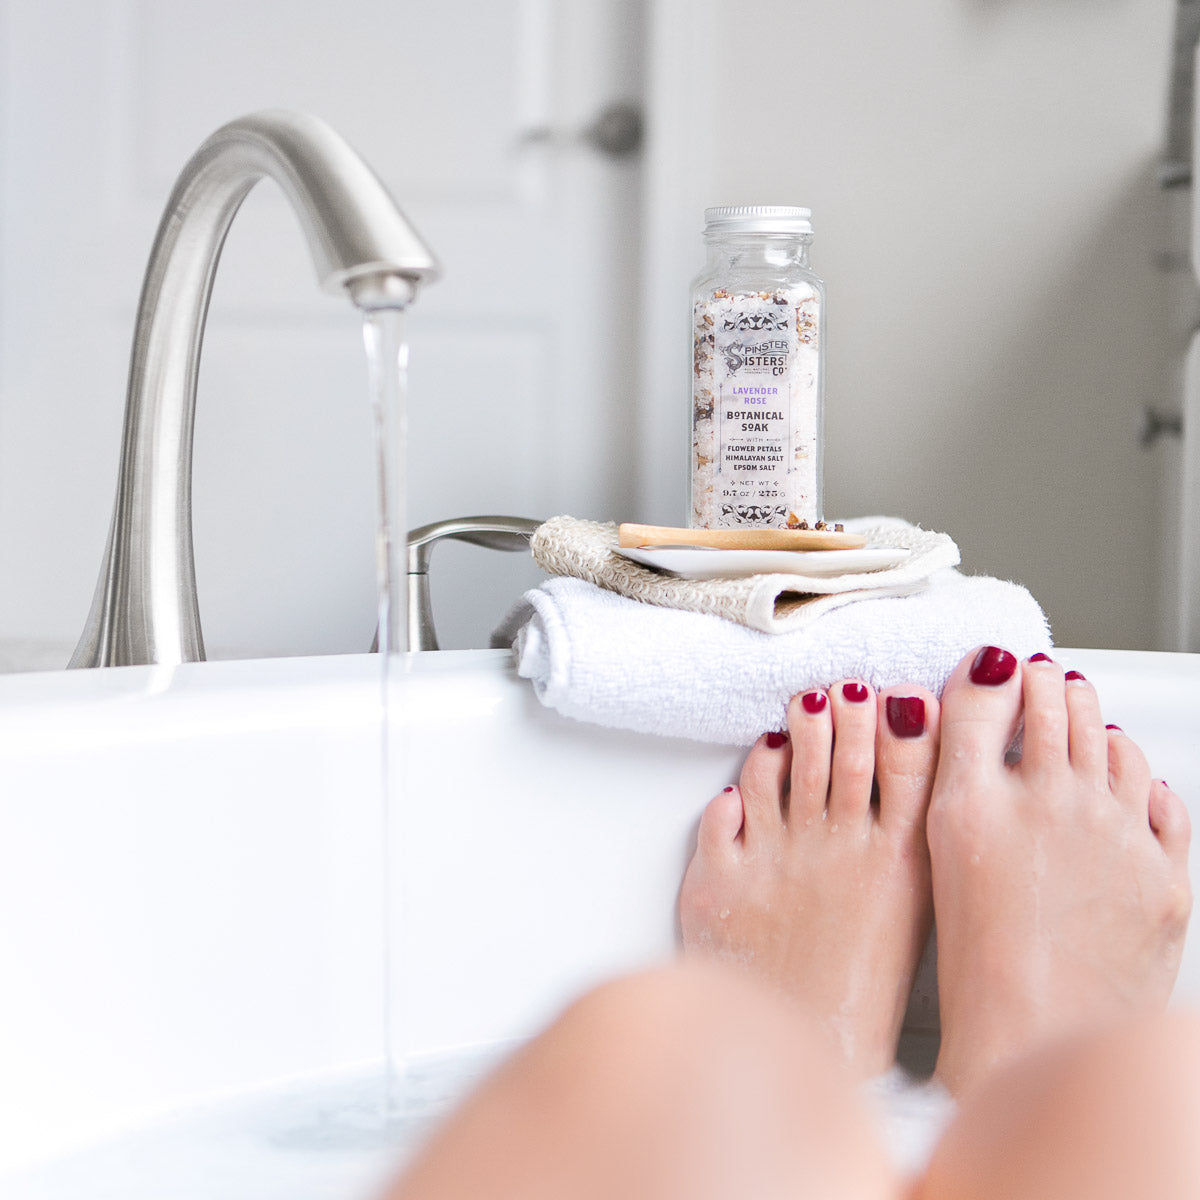 A woman puts her feet up in the tub with a bottle of Lavender Rose Botanical Soak sitting nearby